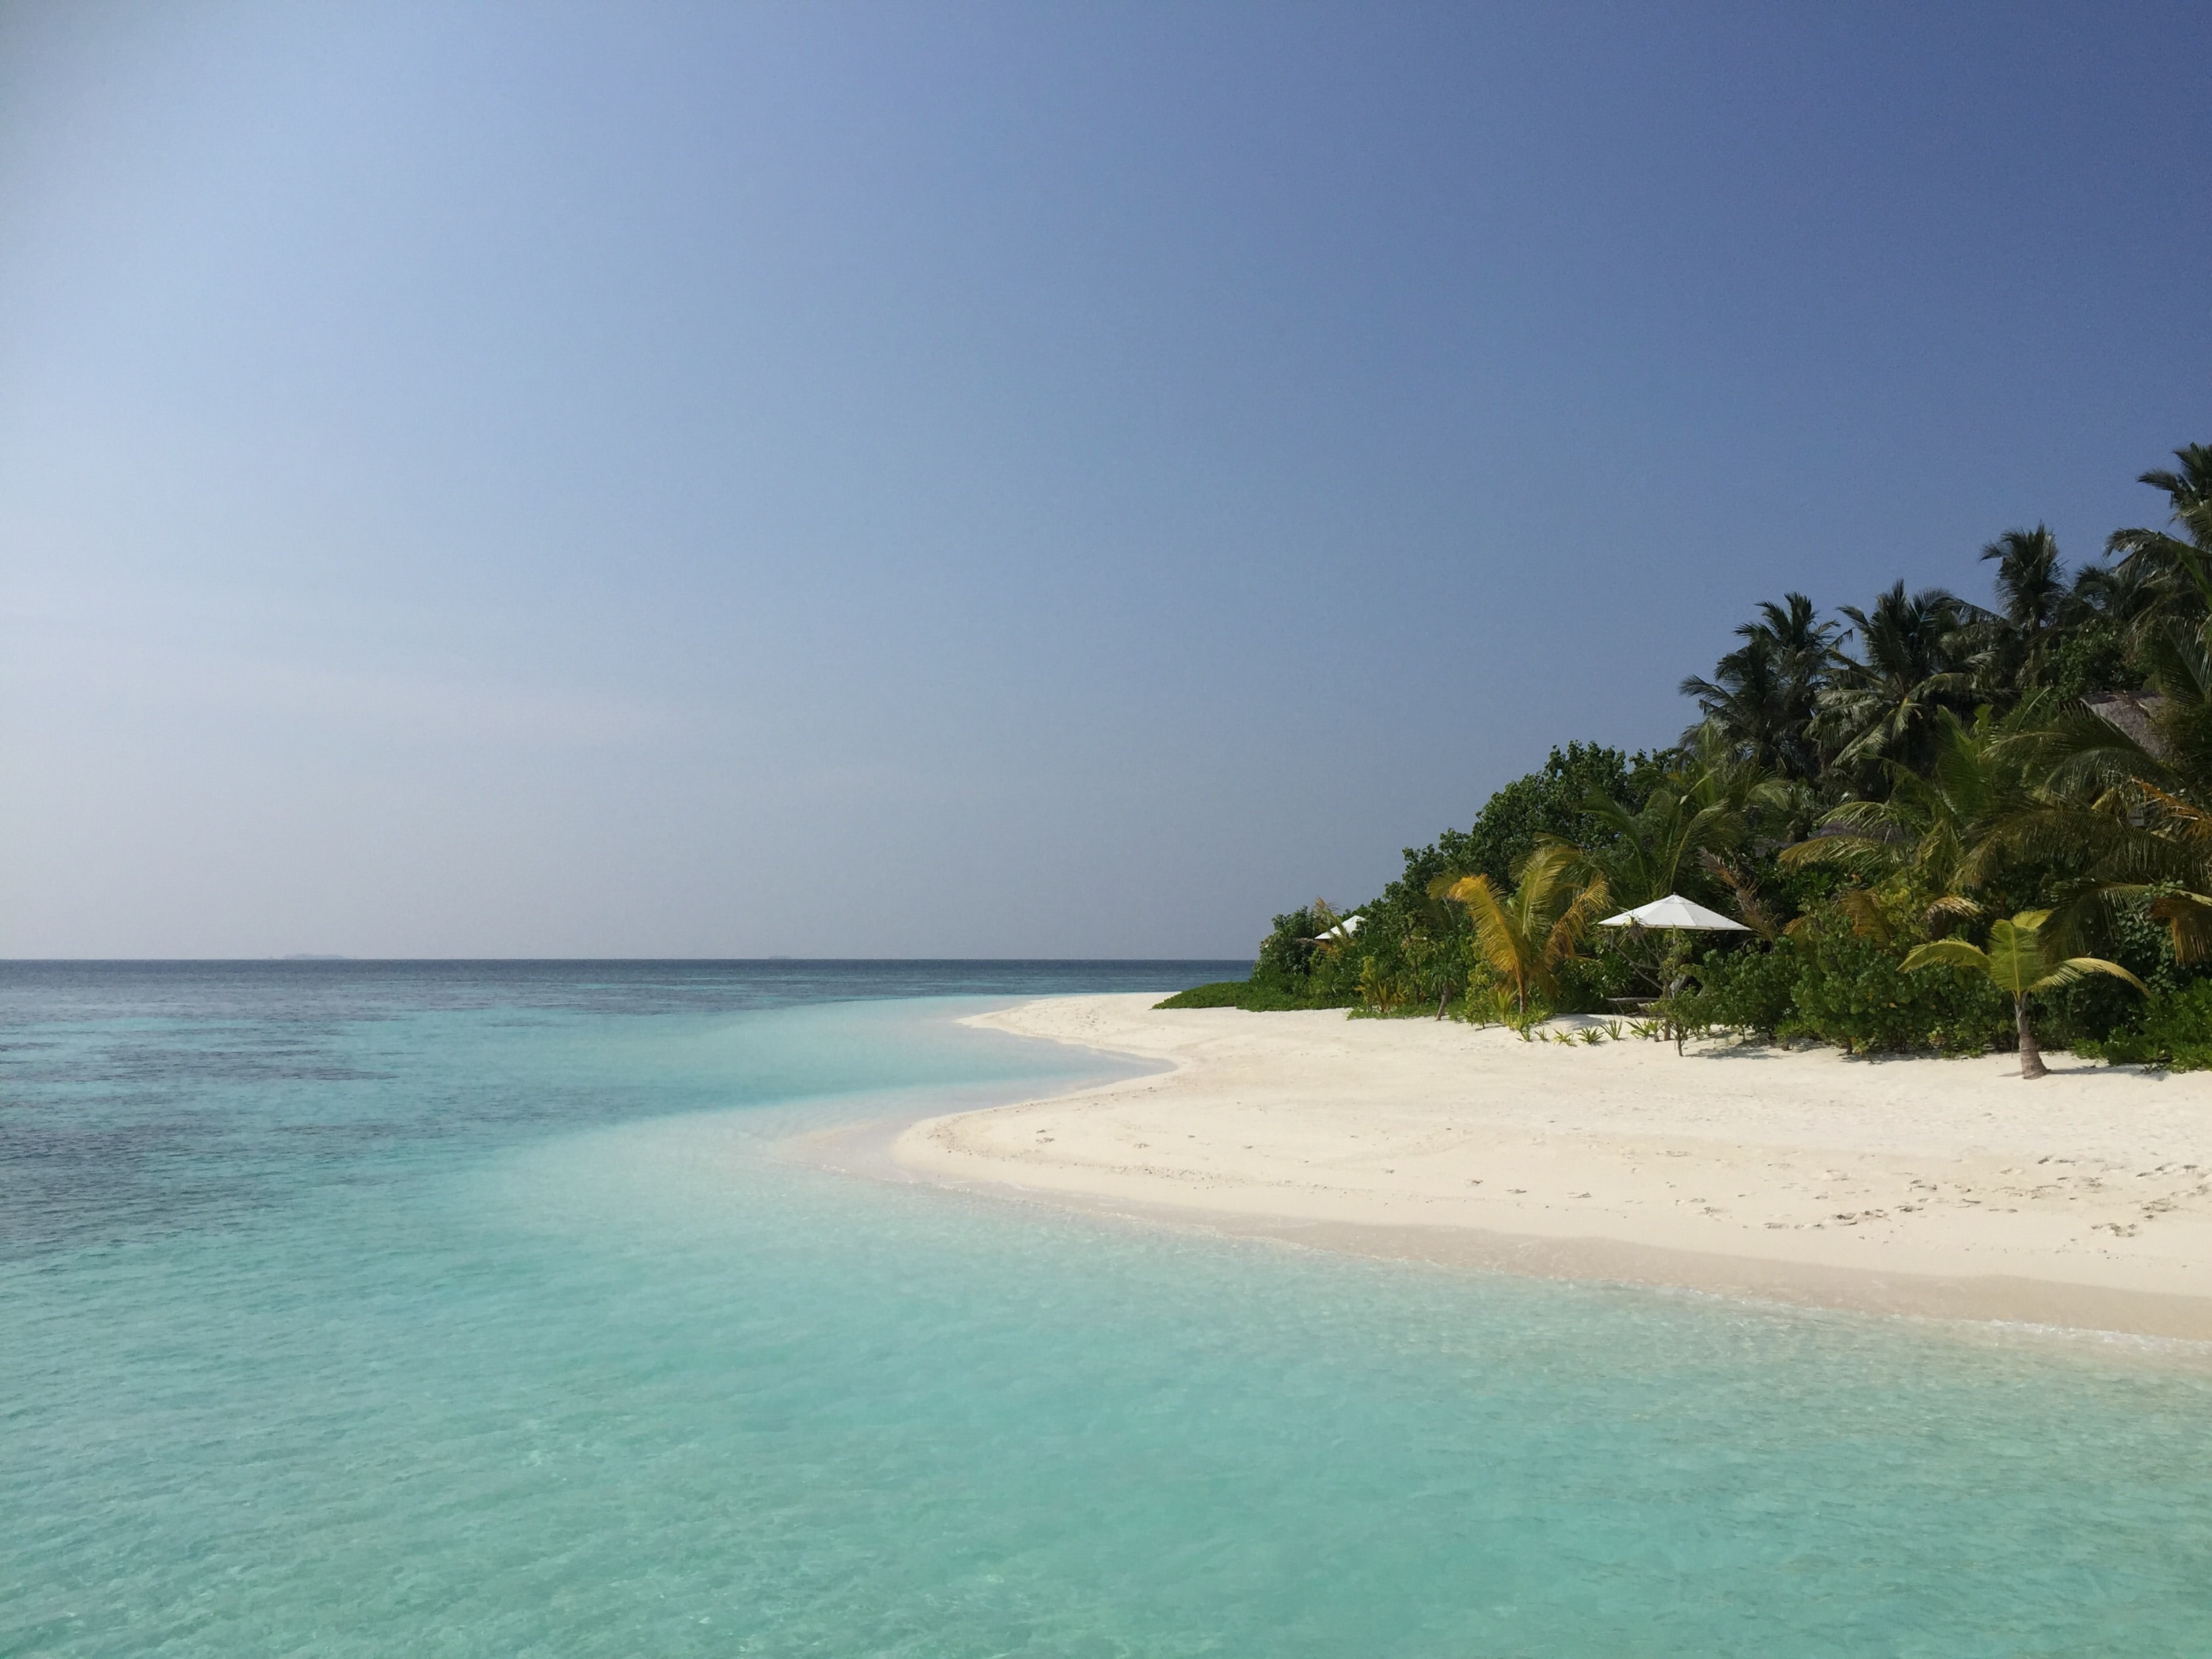 Tropical sandy beach by the palm tree forest